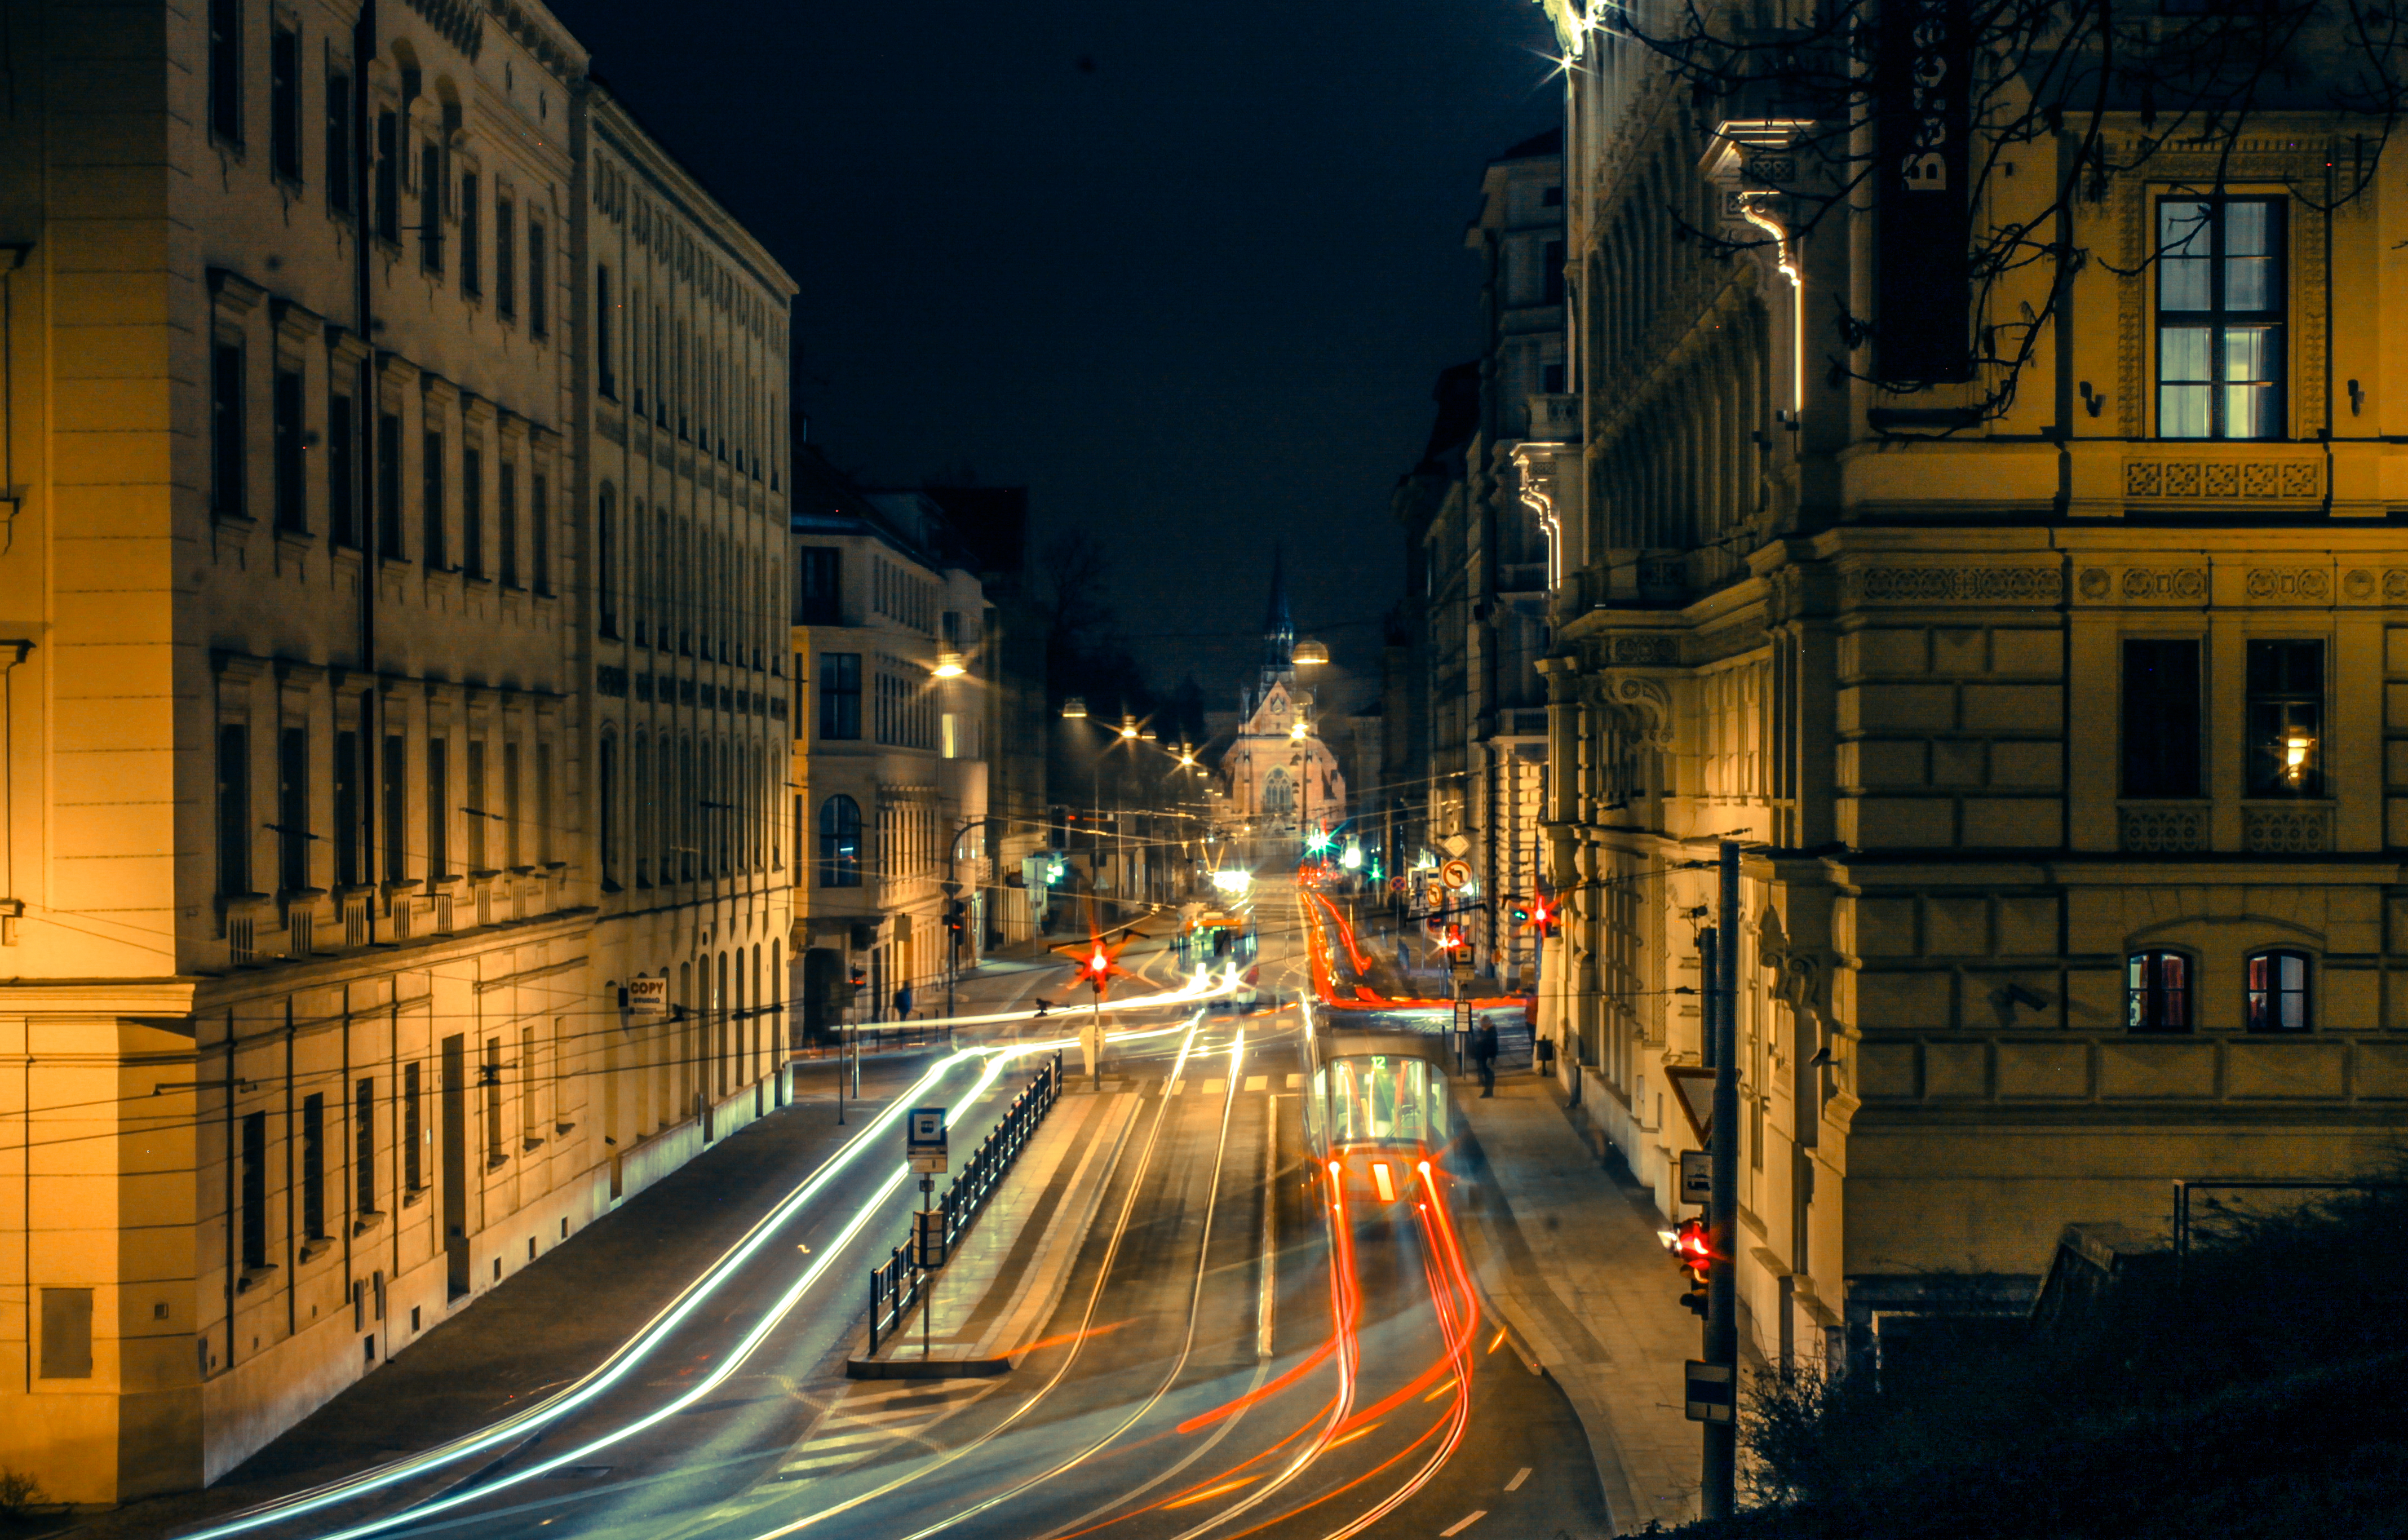 Brno in motion by Redjkeee